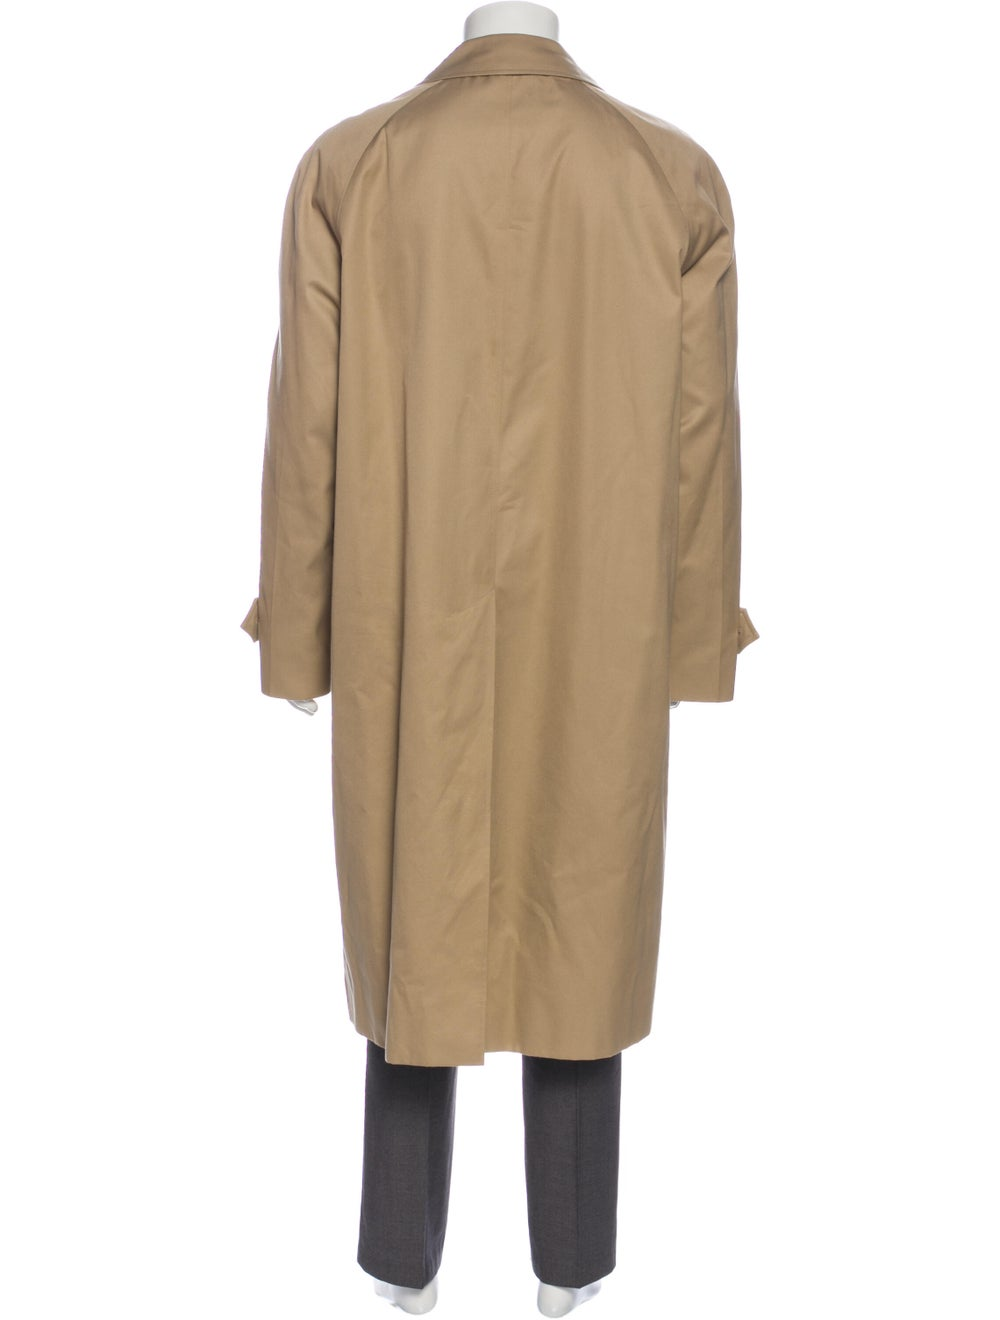 Burberry Trench Coat - image 3